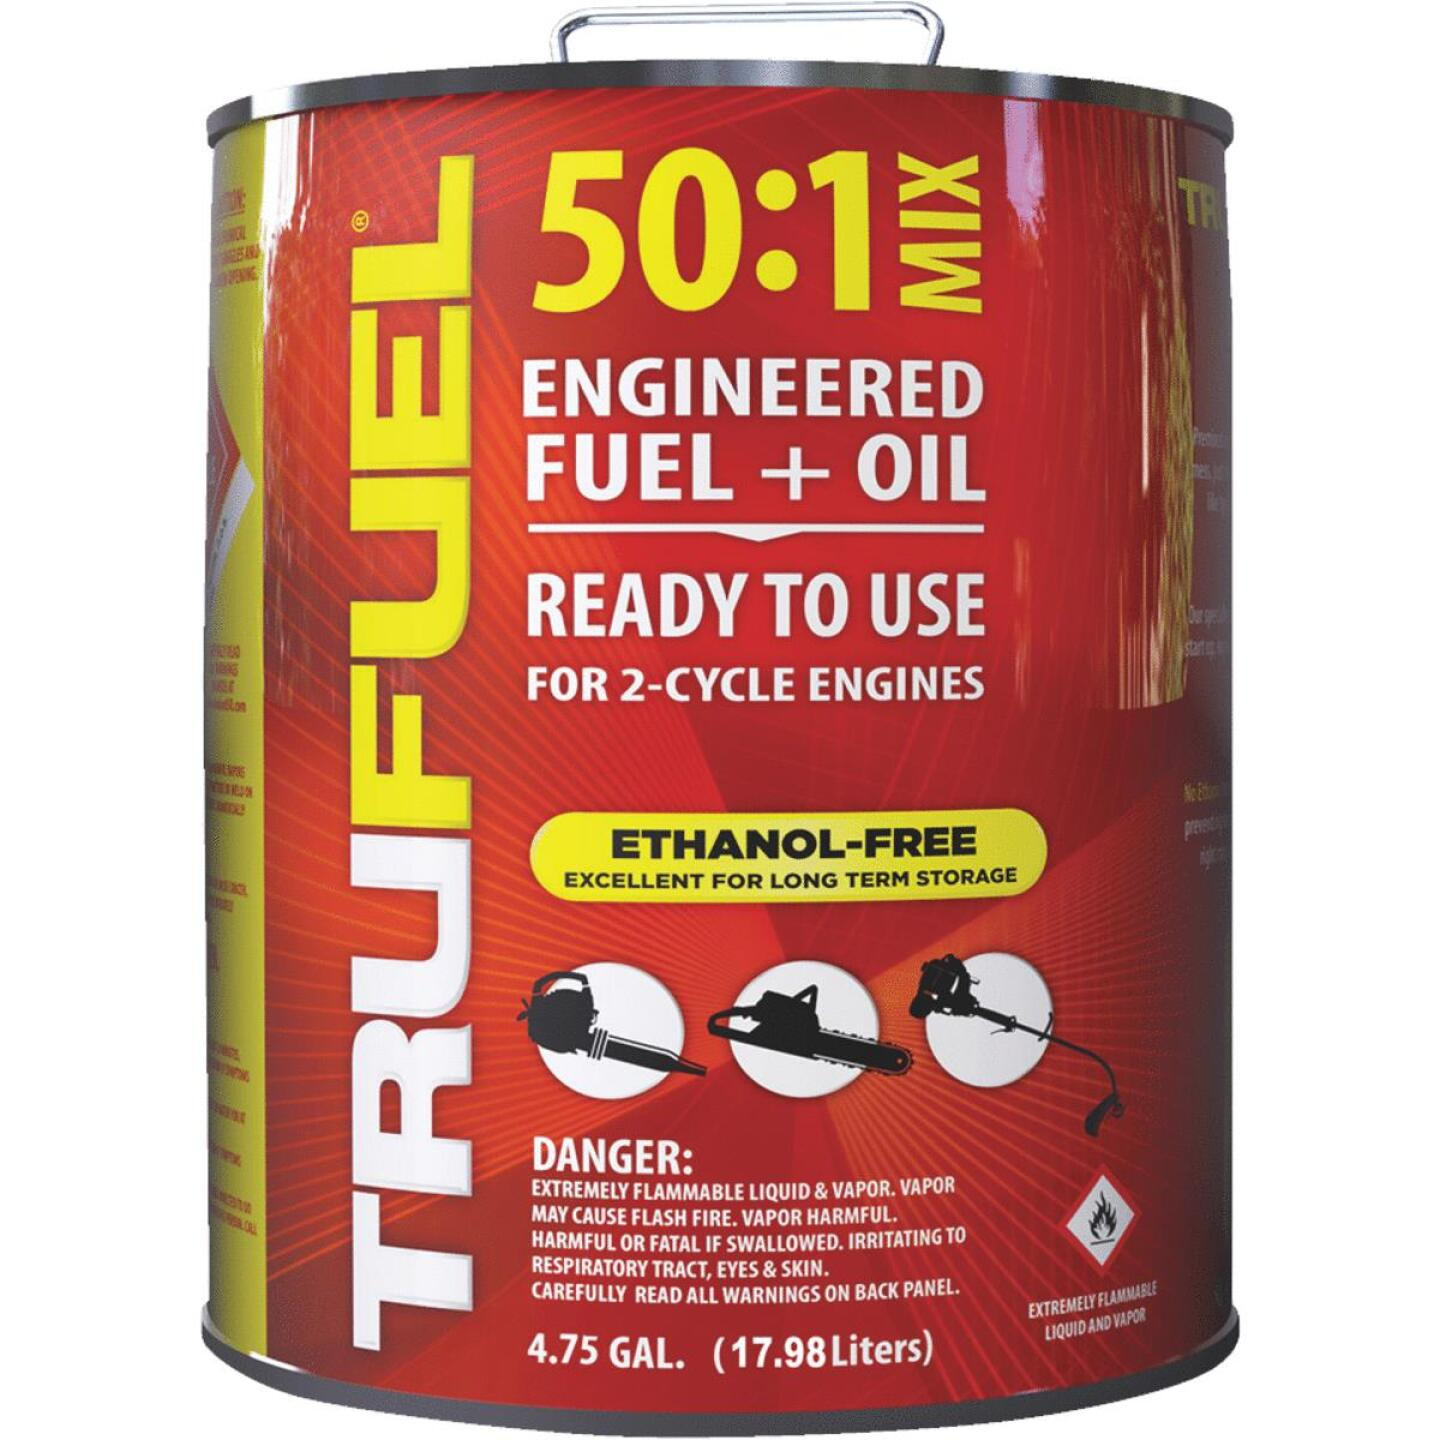 TruFuel 4.75 Gal. 50:1 Ethanol-Free Small Engine Fuel & Oil Pre-Mix Image 1